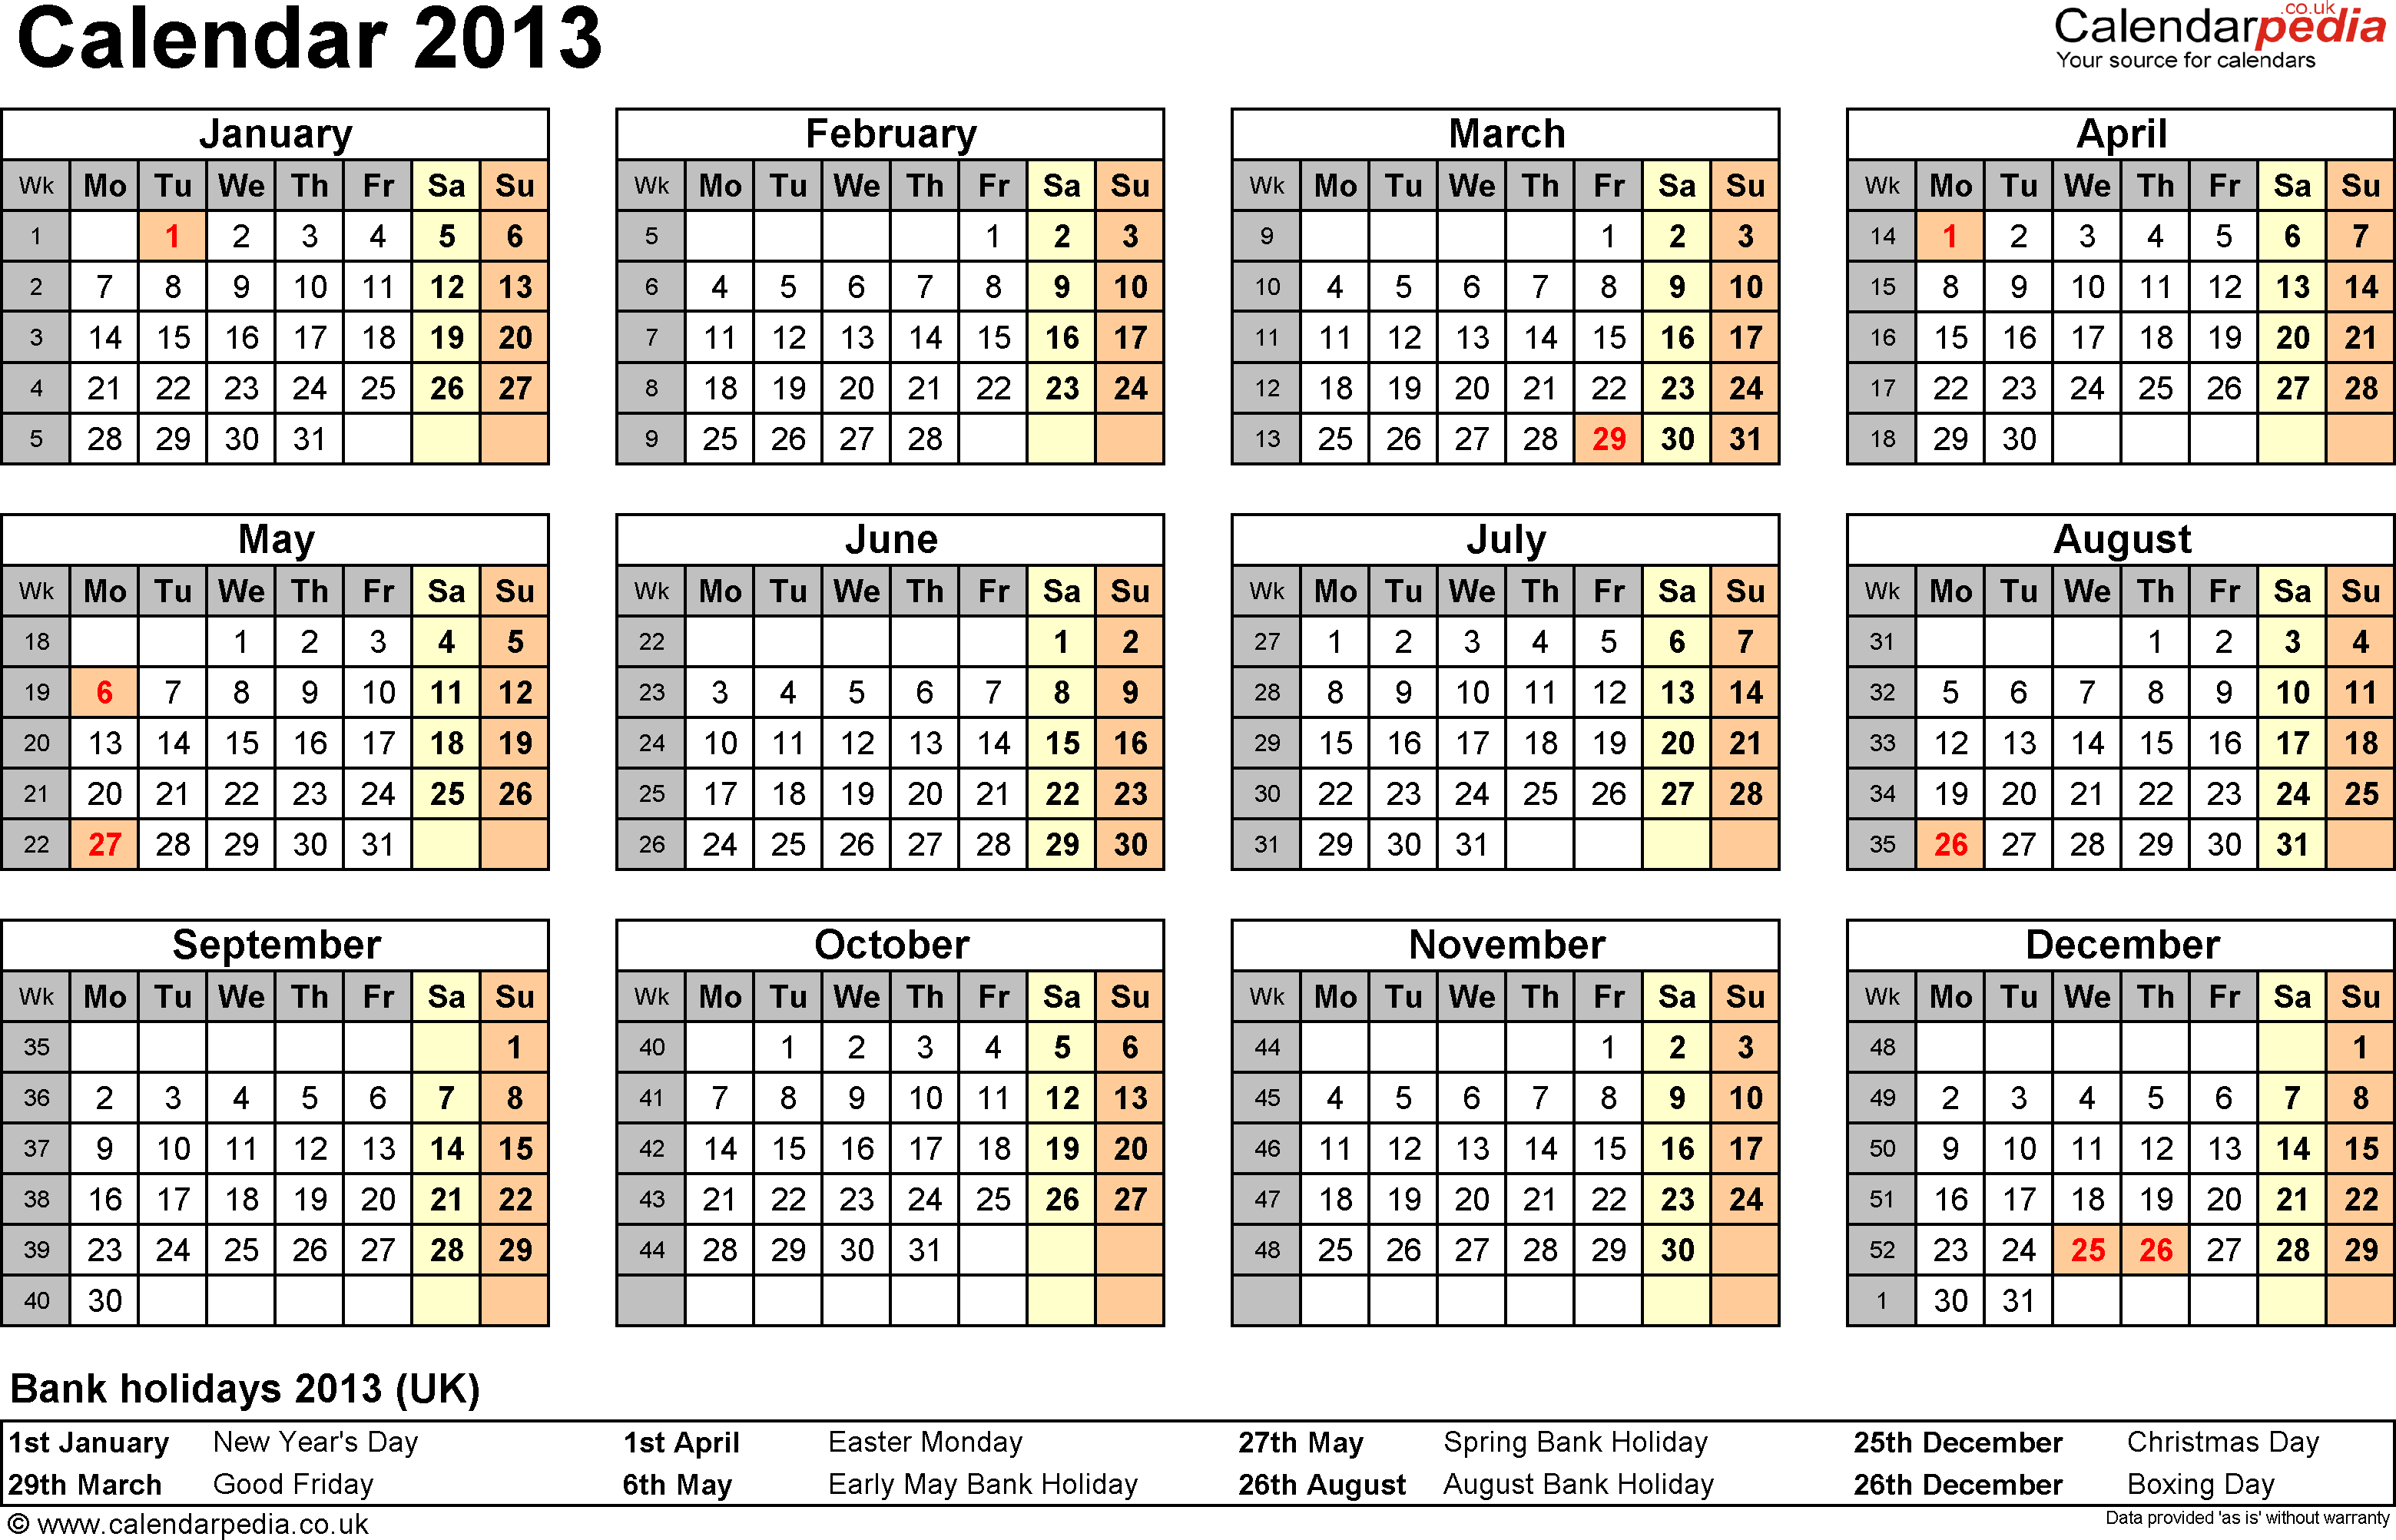 ... Yearly calendar 2013 as Excel template, year overview, 1 page